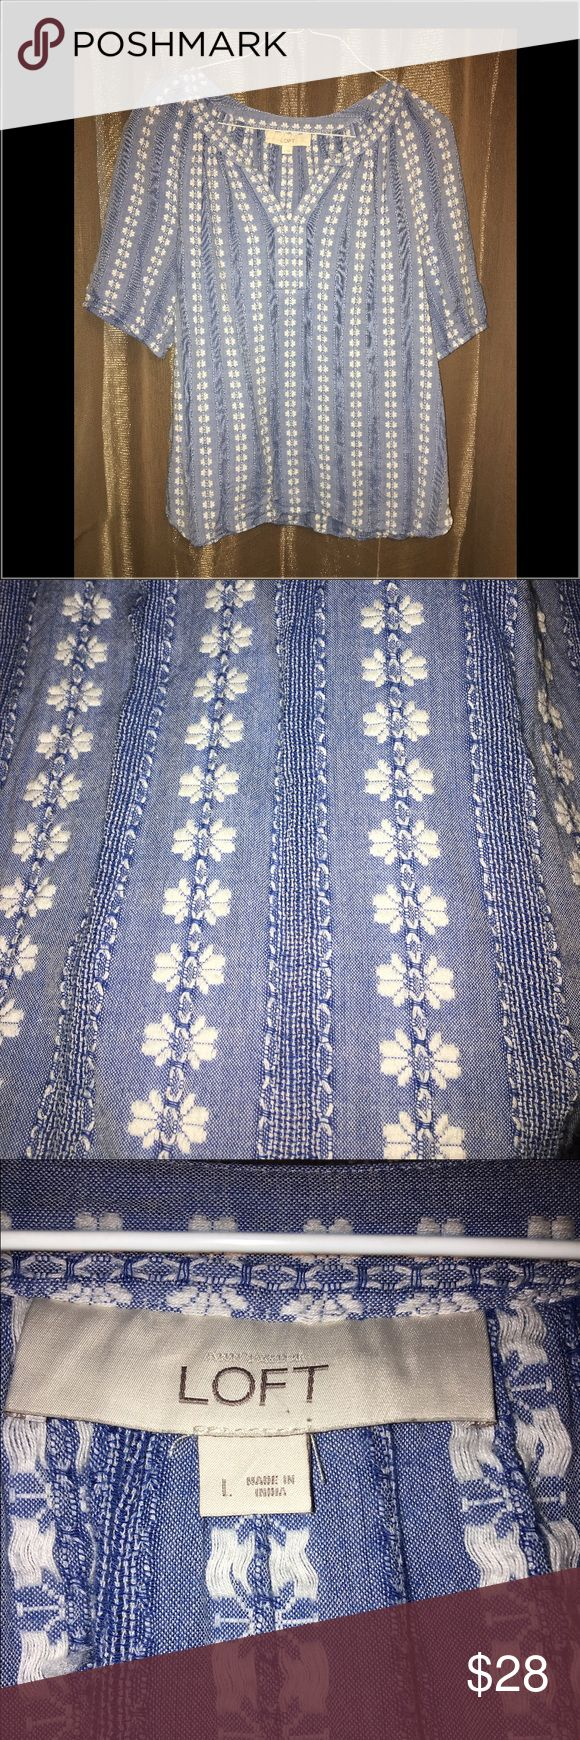 Light jeans and white top size L BEAUTIFUL blue and white printed top from LOFT. ( I took a closer picture of the pattern) Women size L, in great condition. Goes great with fall and winter colors. Love this, only getting rid of it because of weight loss. LOFT Tops Blouses